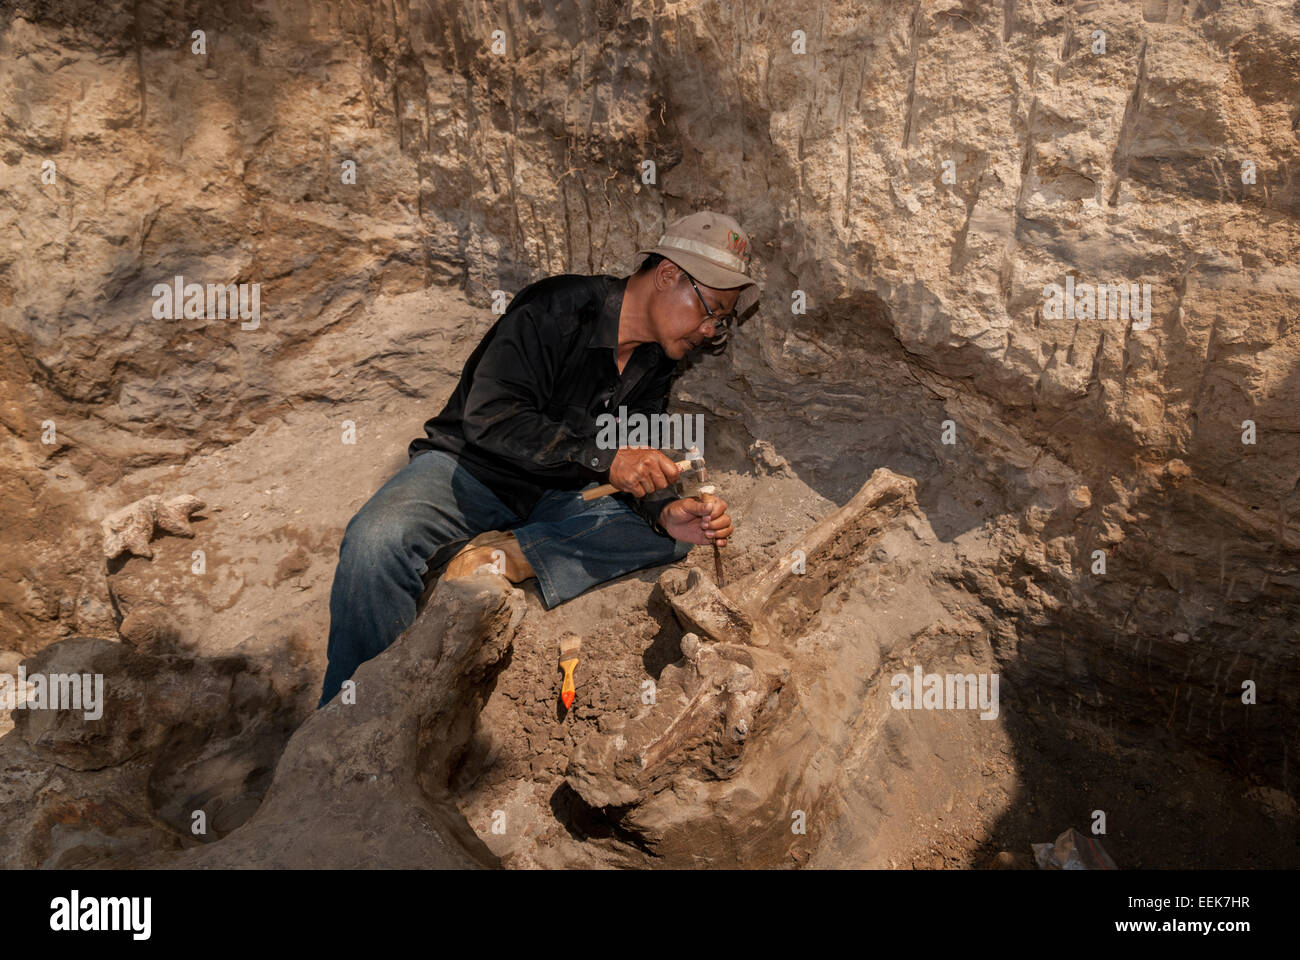 Indonesian paleontologist excavating Blora Elephant (Elephas hysudrindicus) fossils in Central Java. - Stock Image